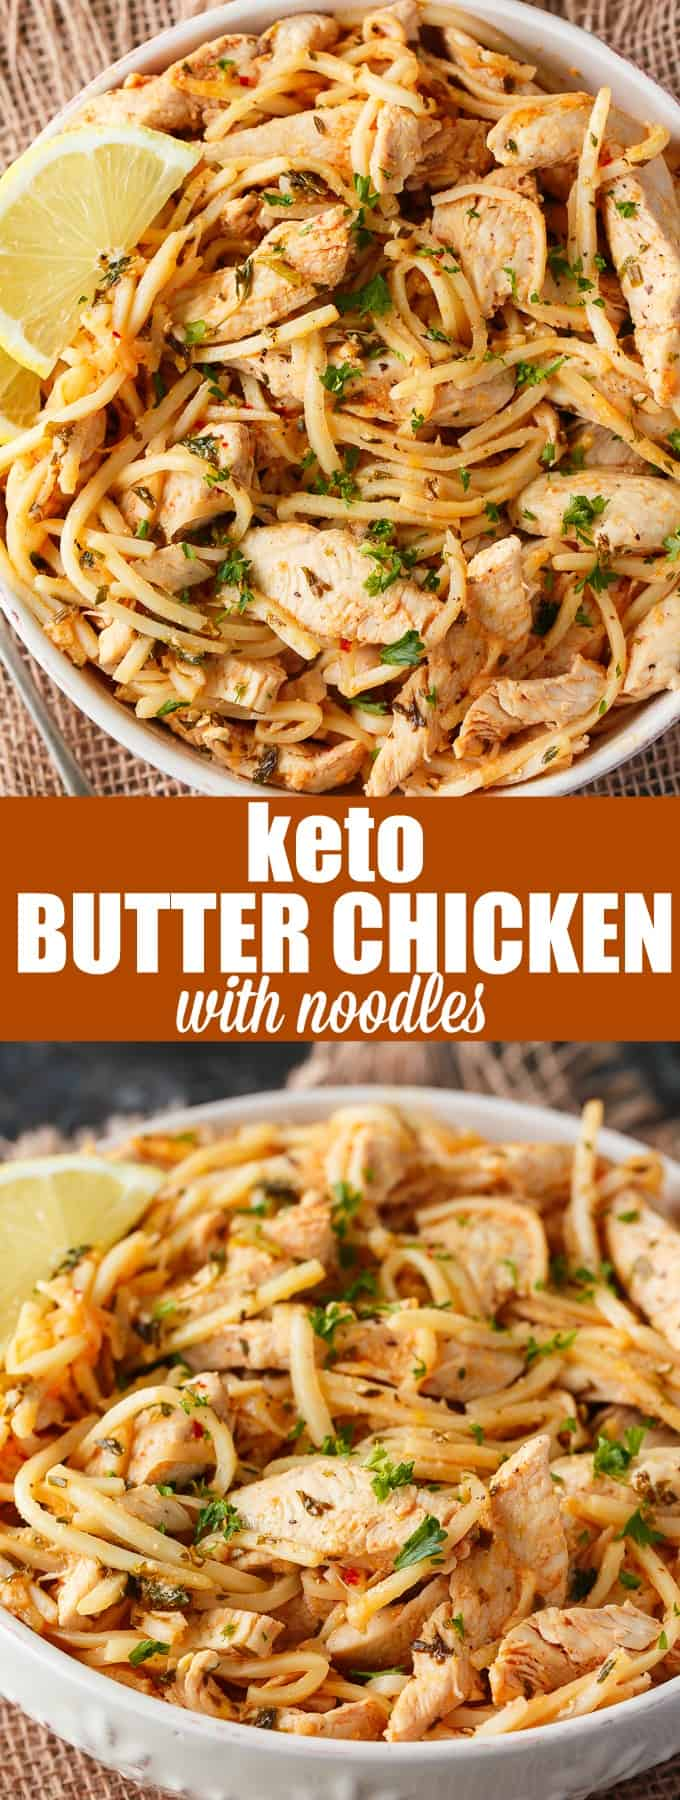 Keto Butter Chicken with Noodles - The most tender, flavorful keto chicken dish ever! You won't even miss the carbs in this easy recipe.